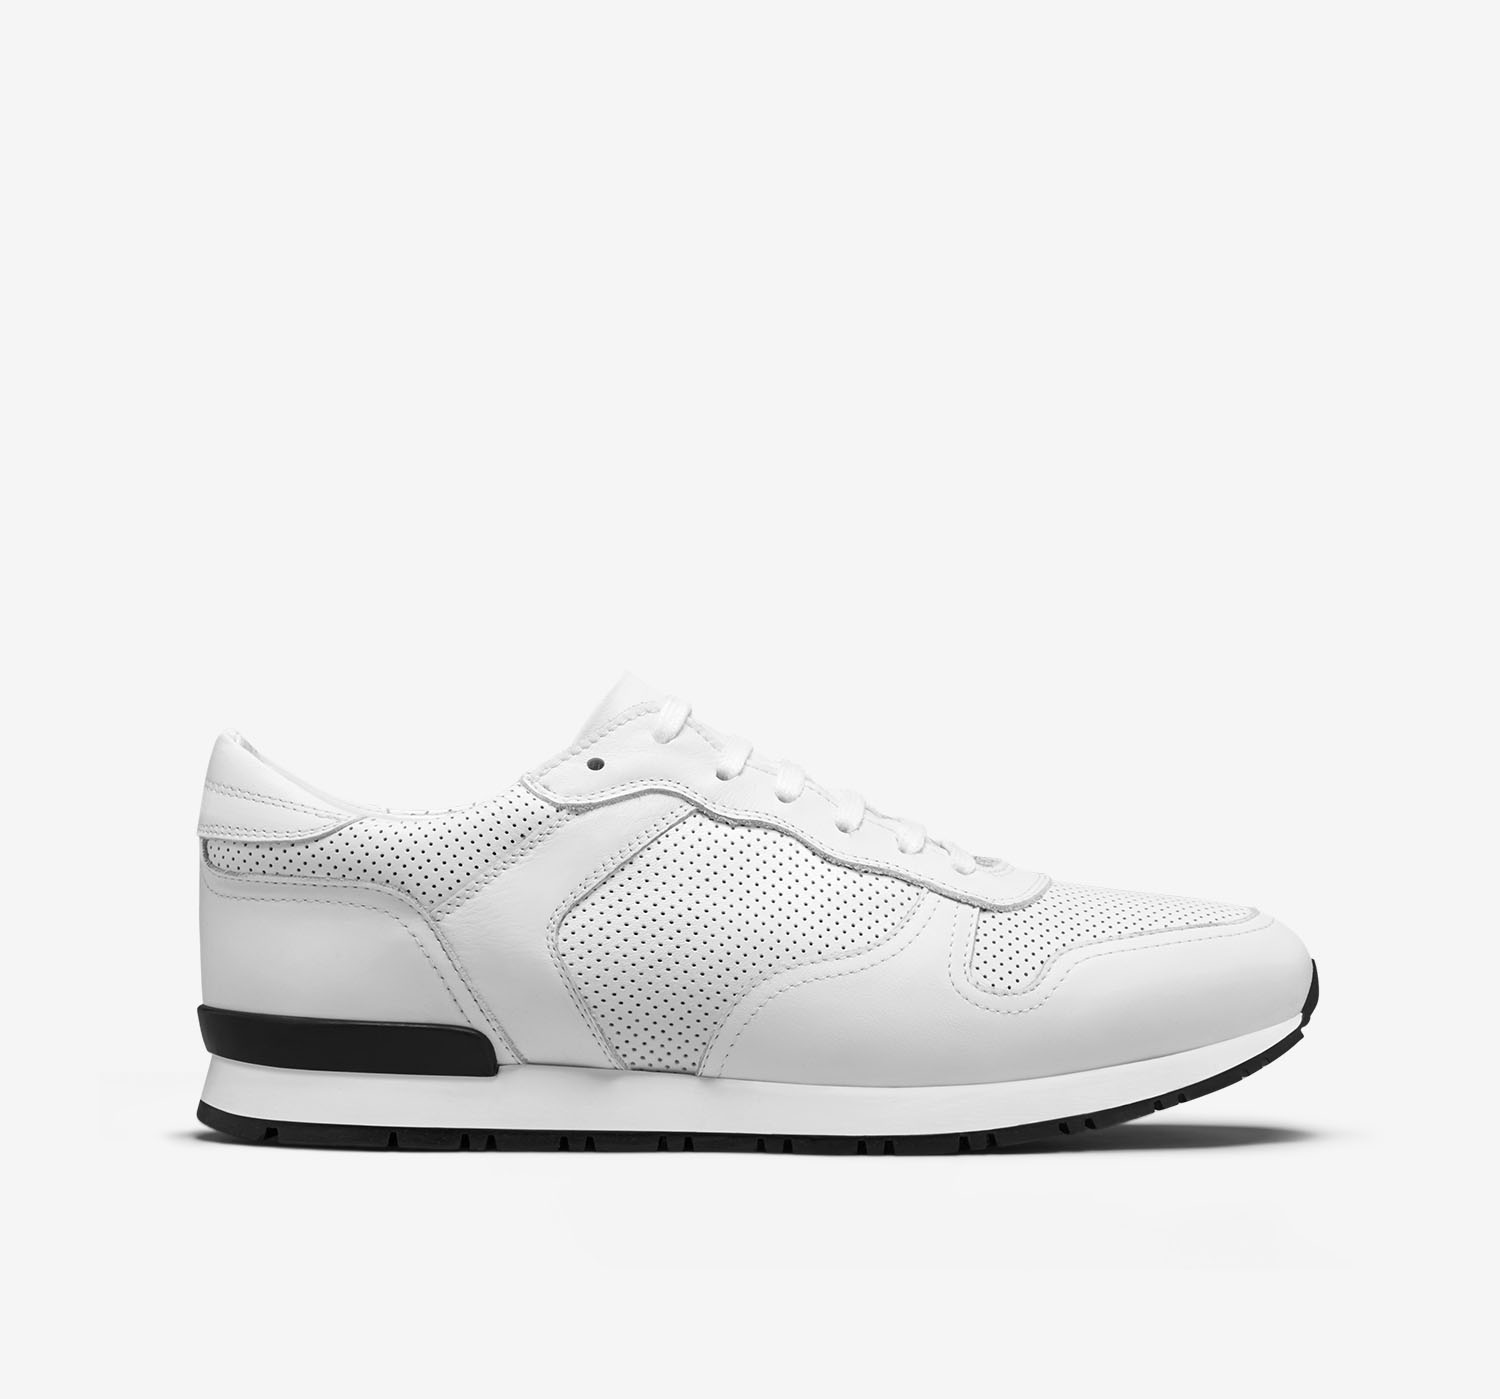 white oliver cabell sneakers